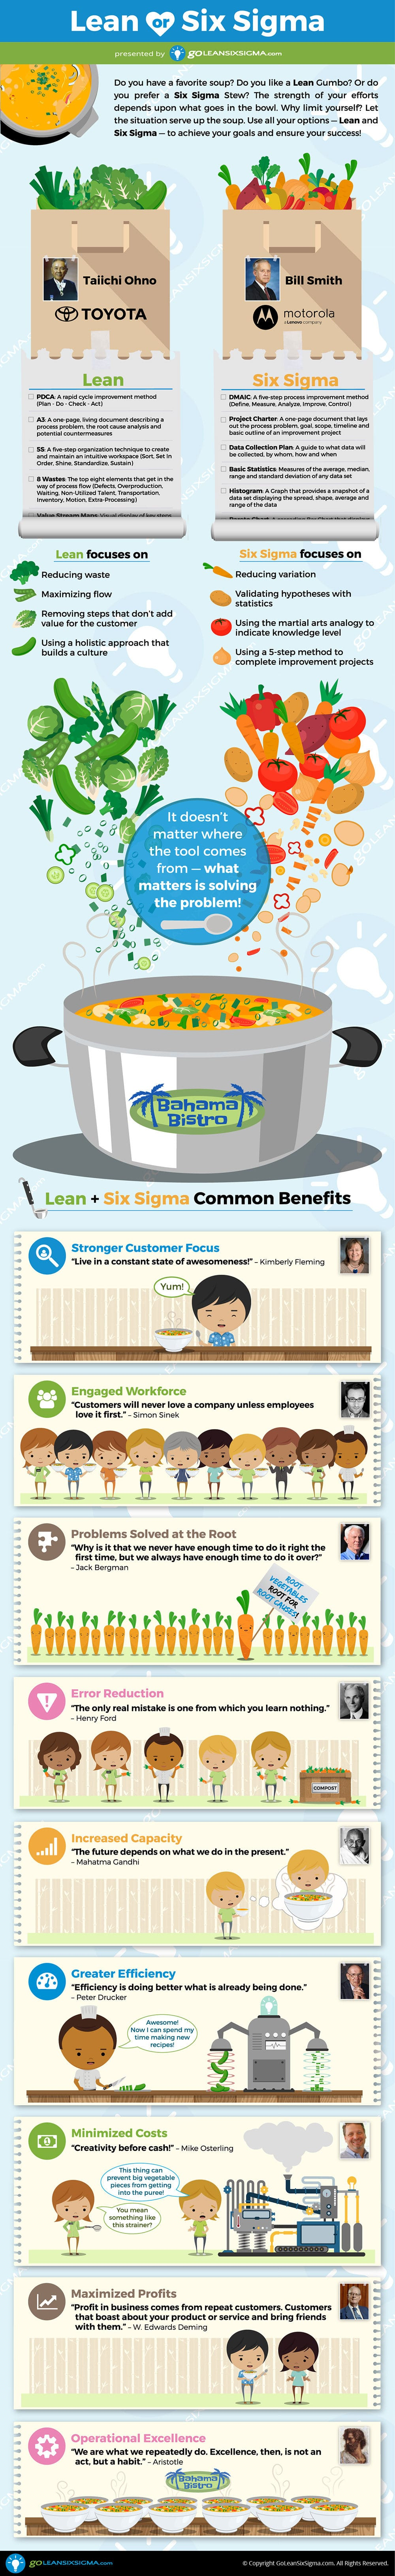 Lean or Six Sigma Infographic - GoLeanSixSigma.com